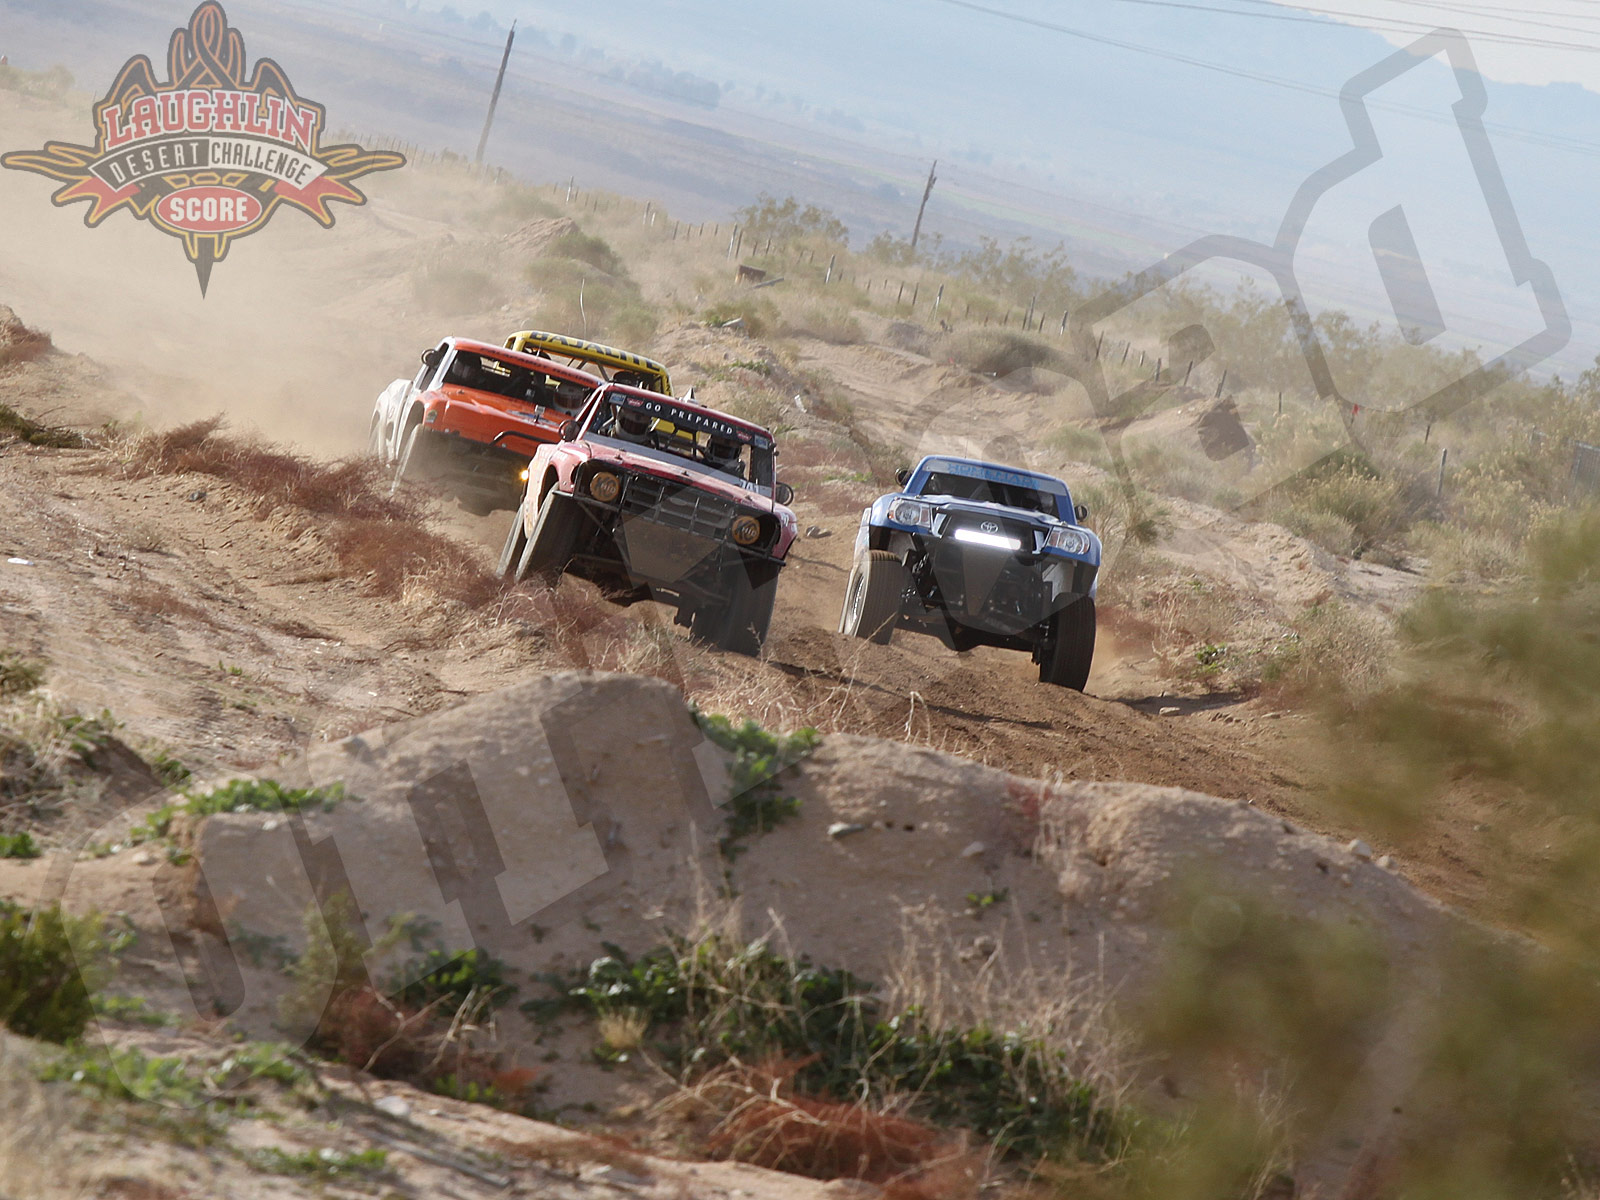 012011or 6571+2011 score laughlin desert challenge+truck classes